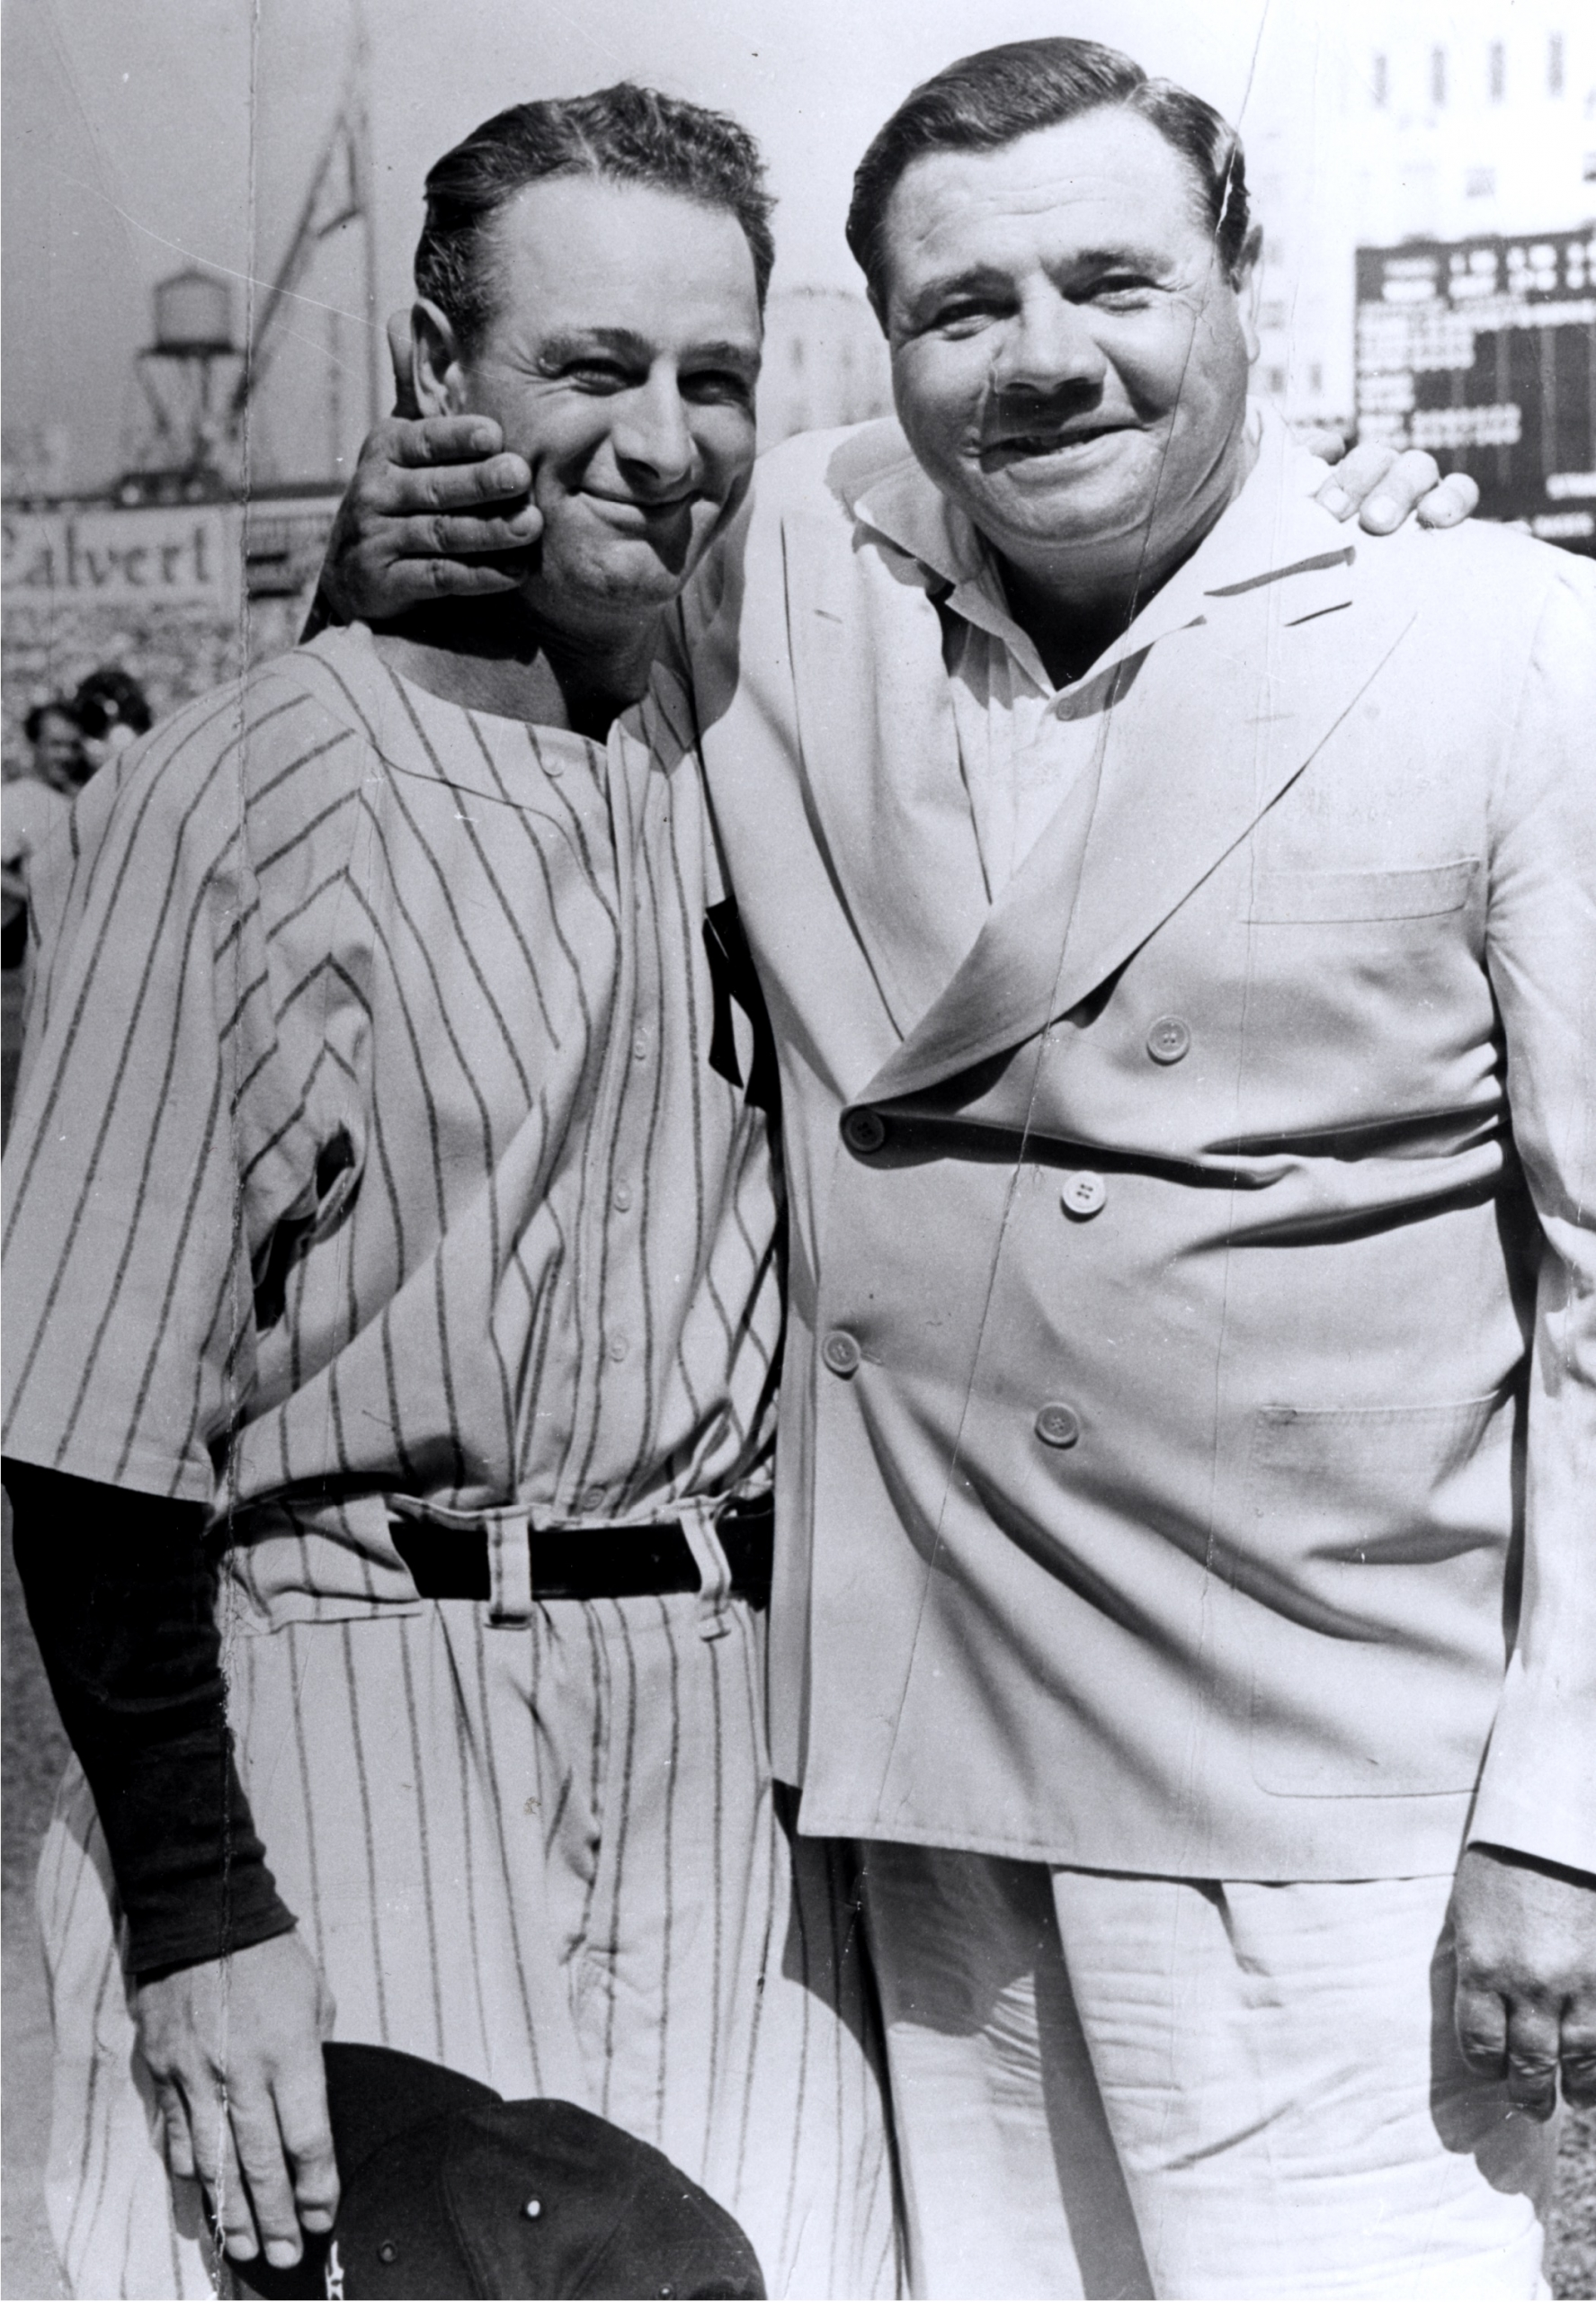 1939 Babe Ruth and Lou Gehrig Two of Yankees Greatest Players Enjoy a Personal Moment on Lou Gehrigs Day Archival 11x14 Photo